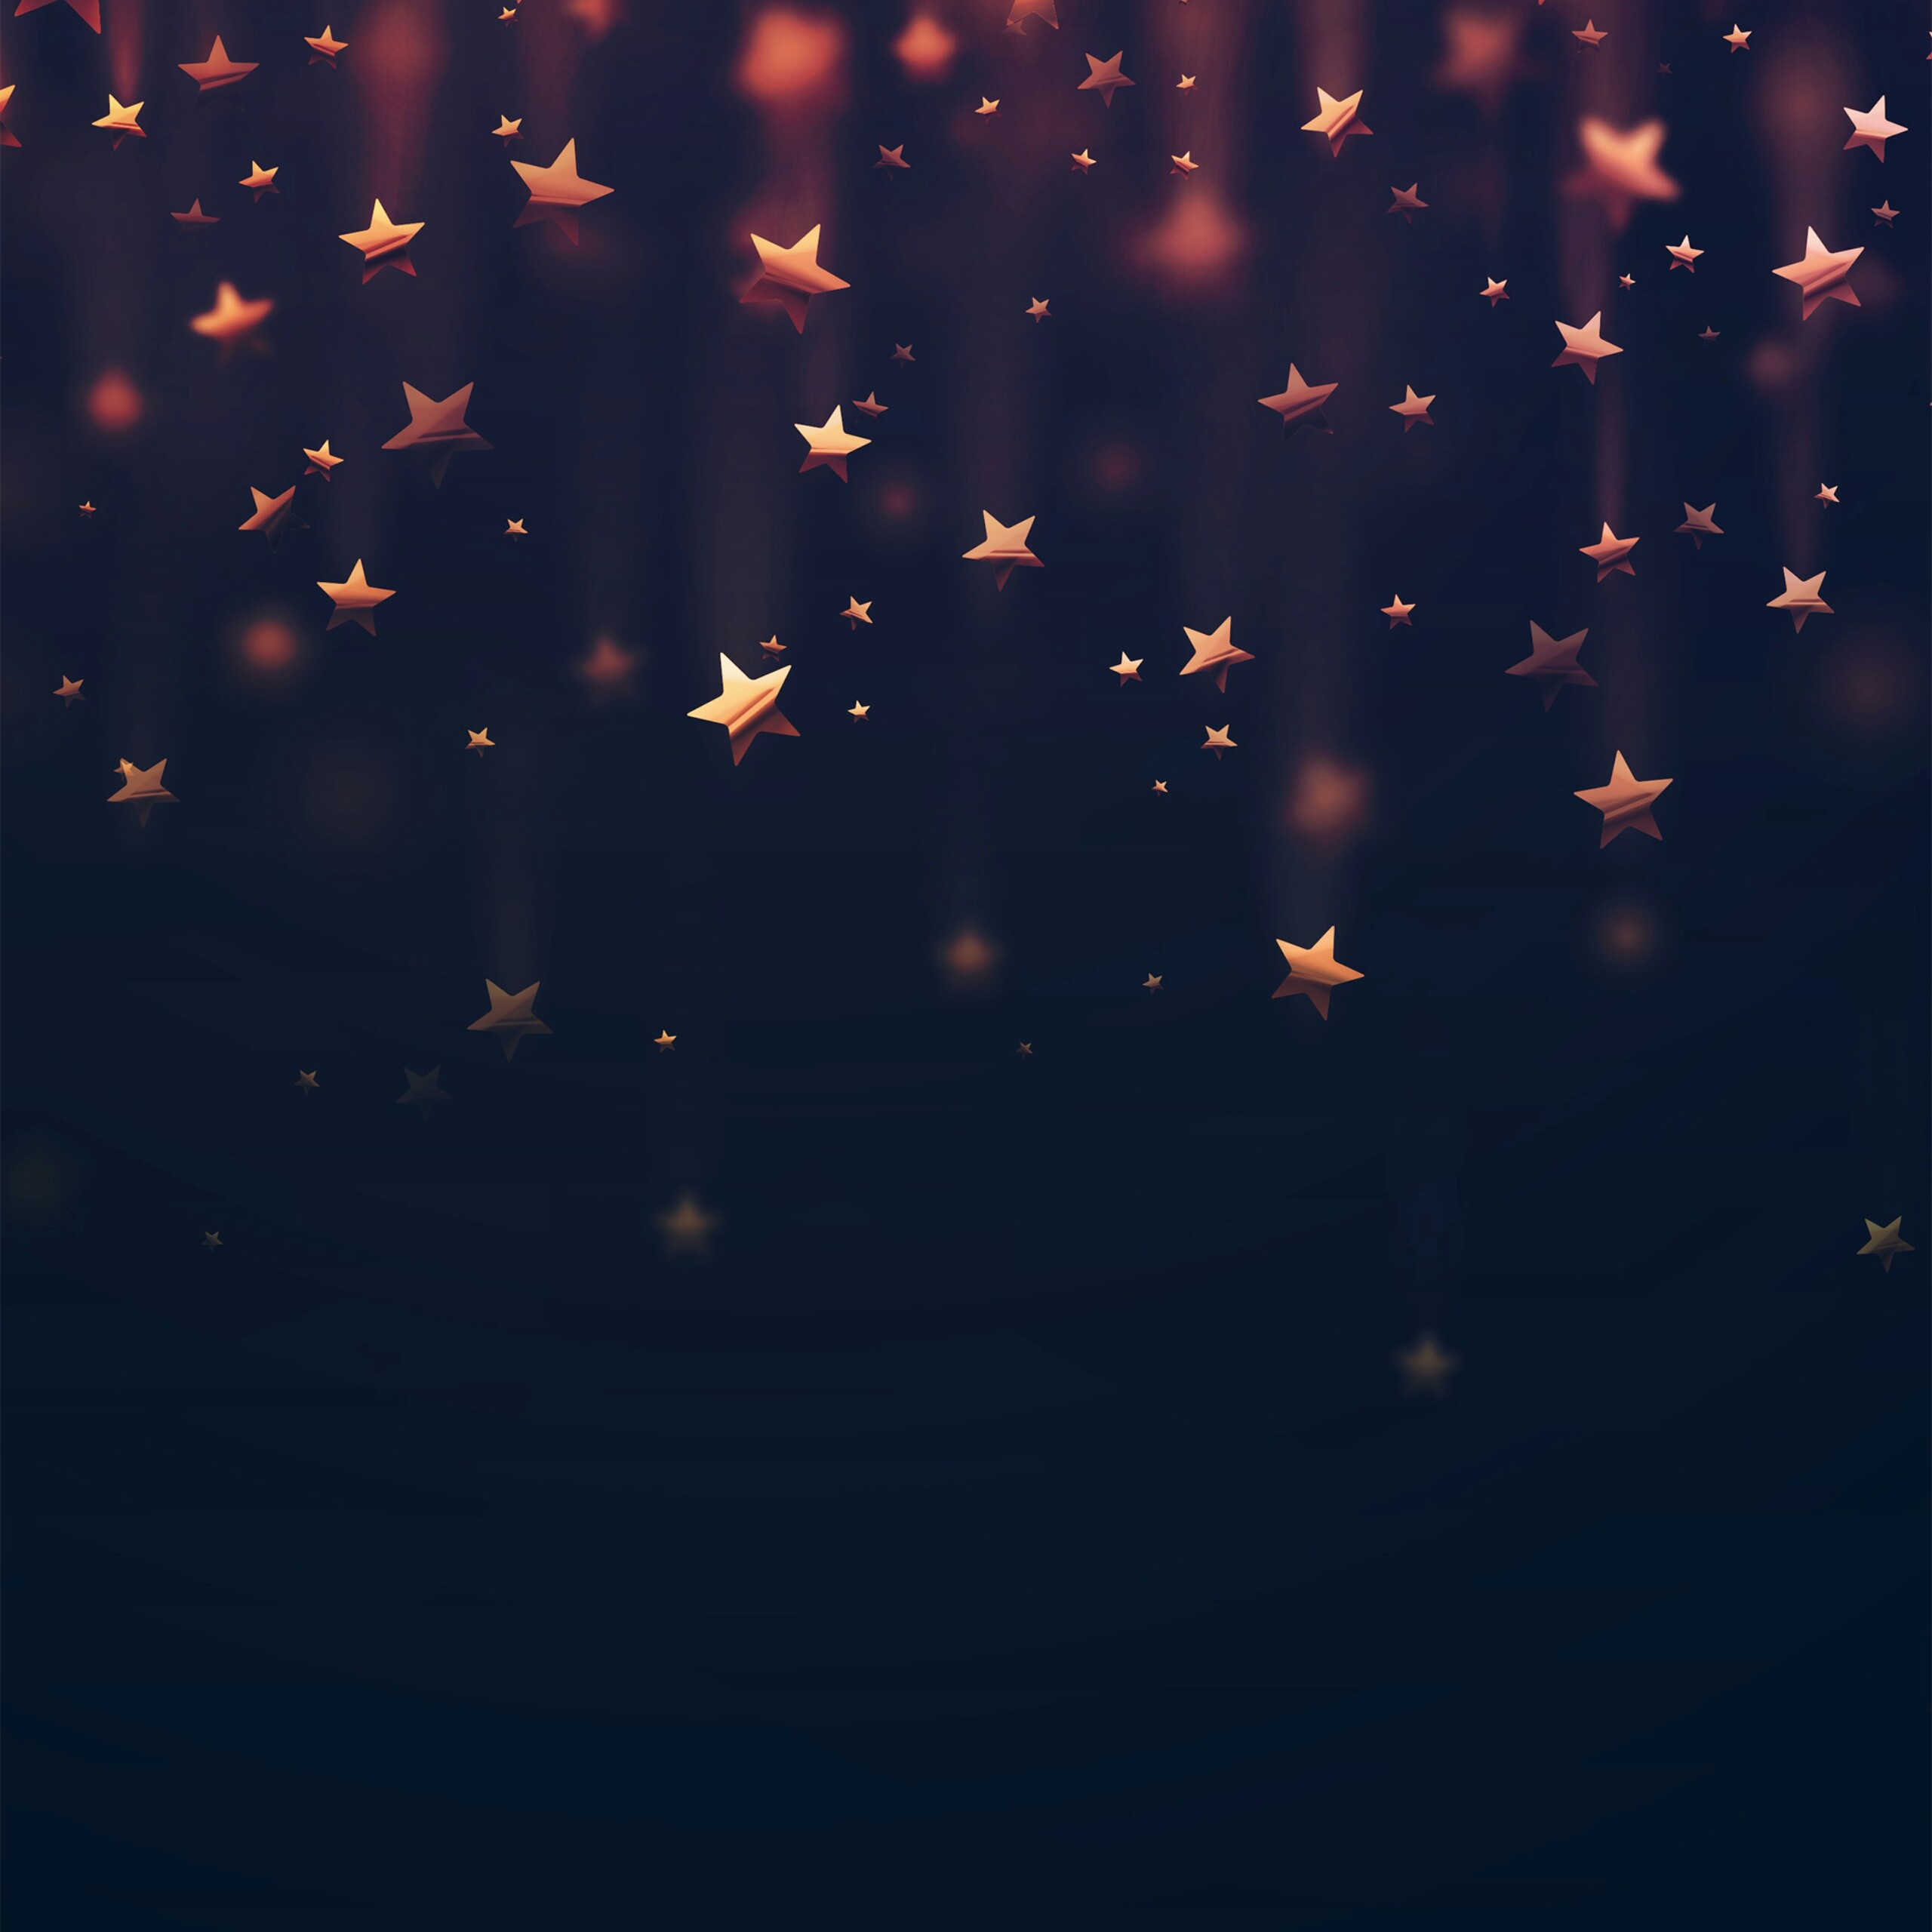 Falling Stars Abstract QHD Wallpaper   Wallpaper   Vactual Papers 2560x2560